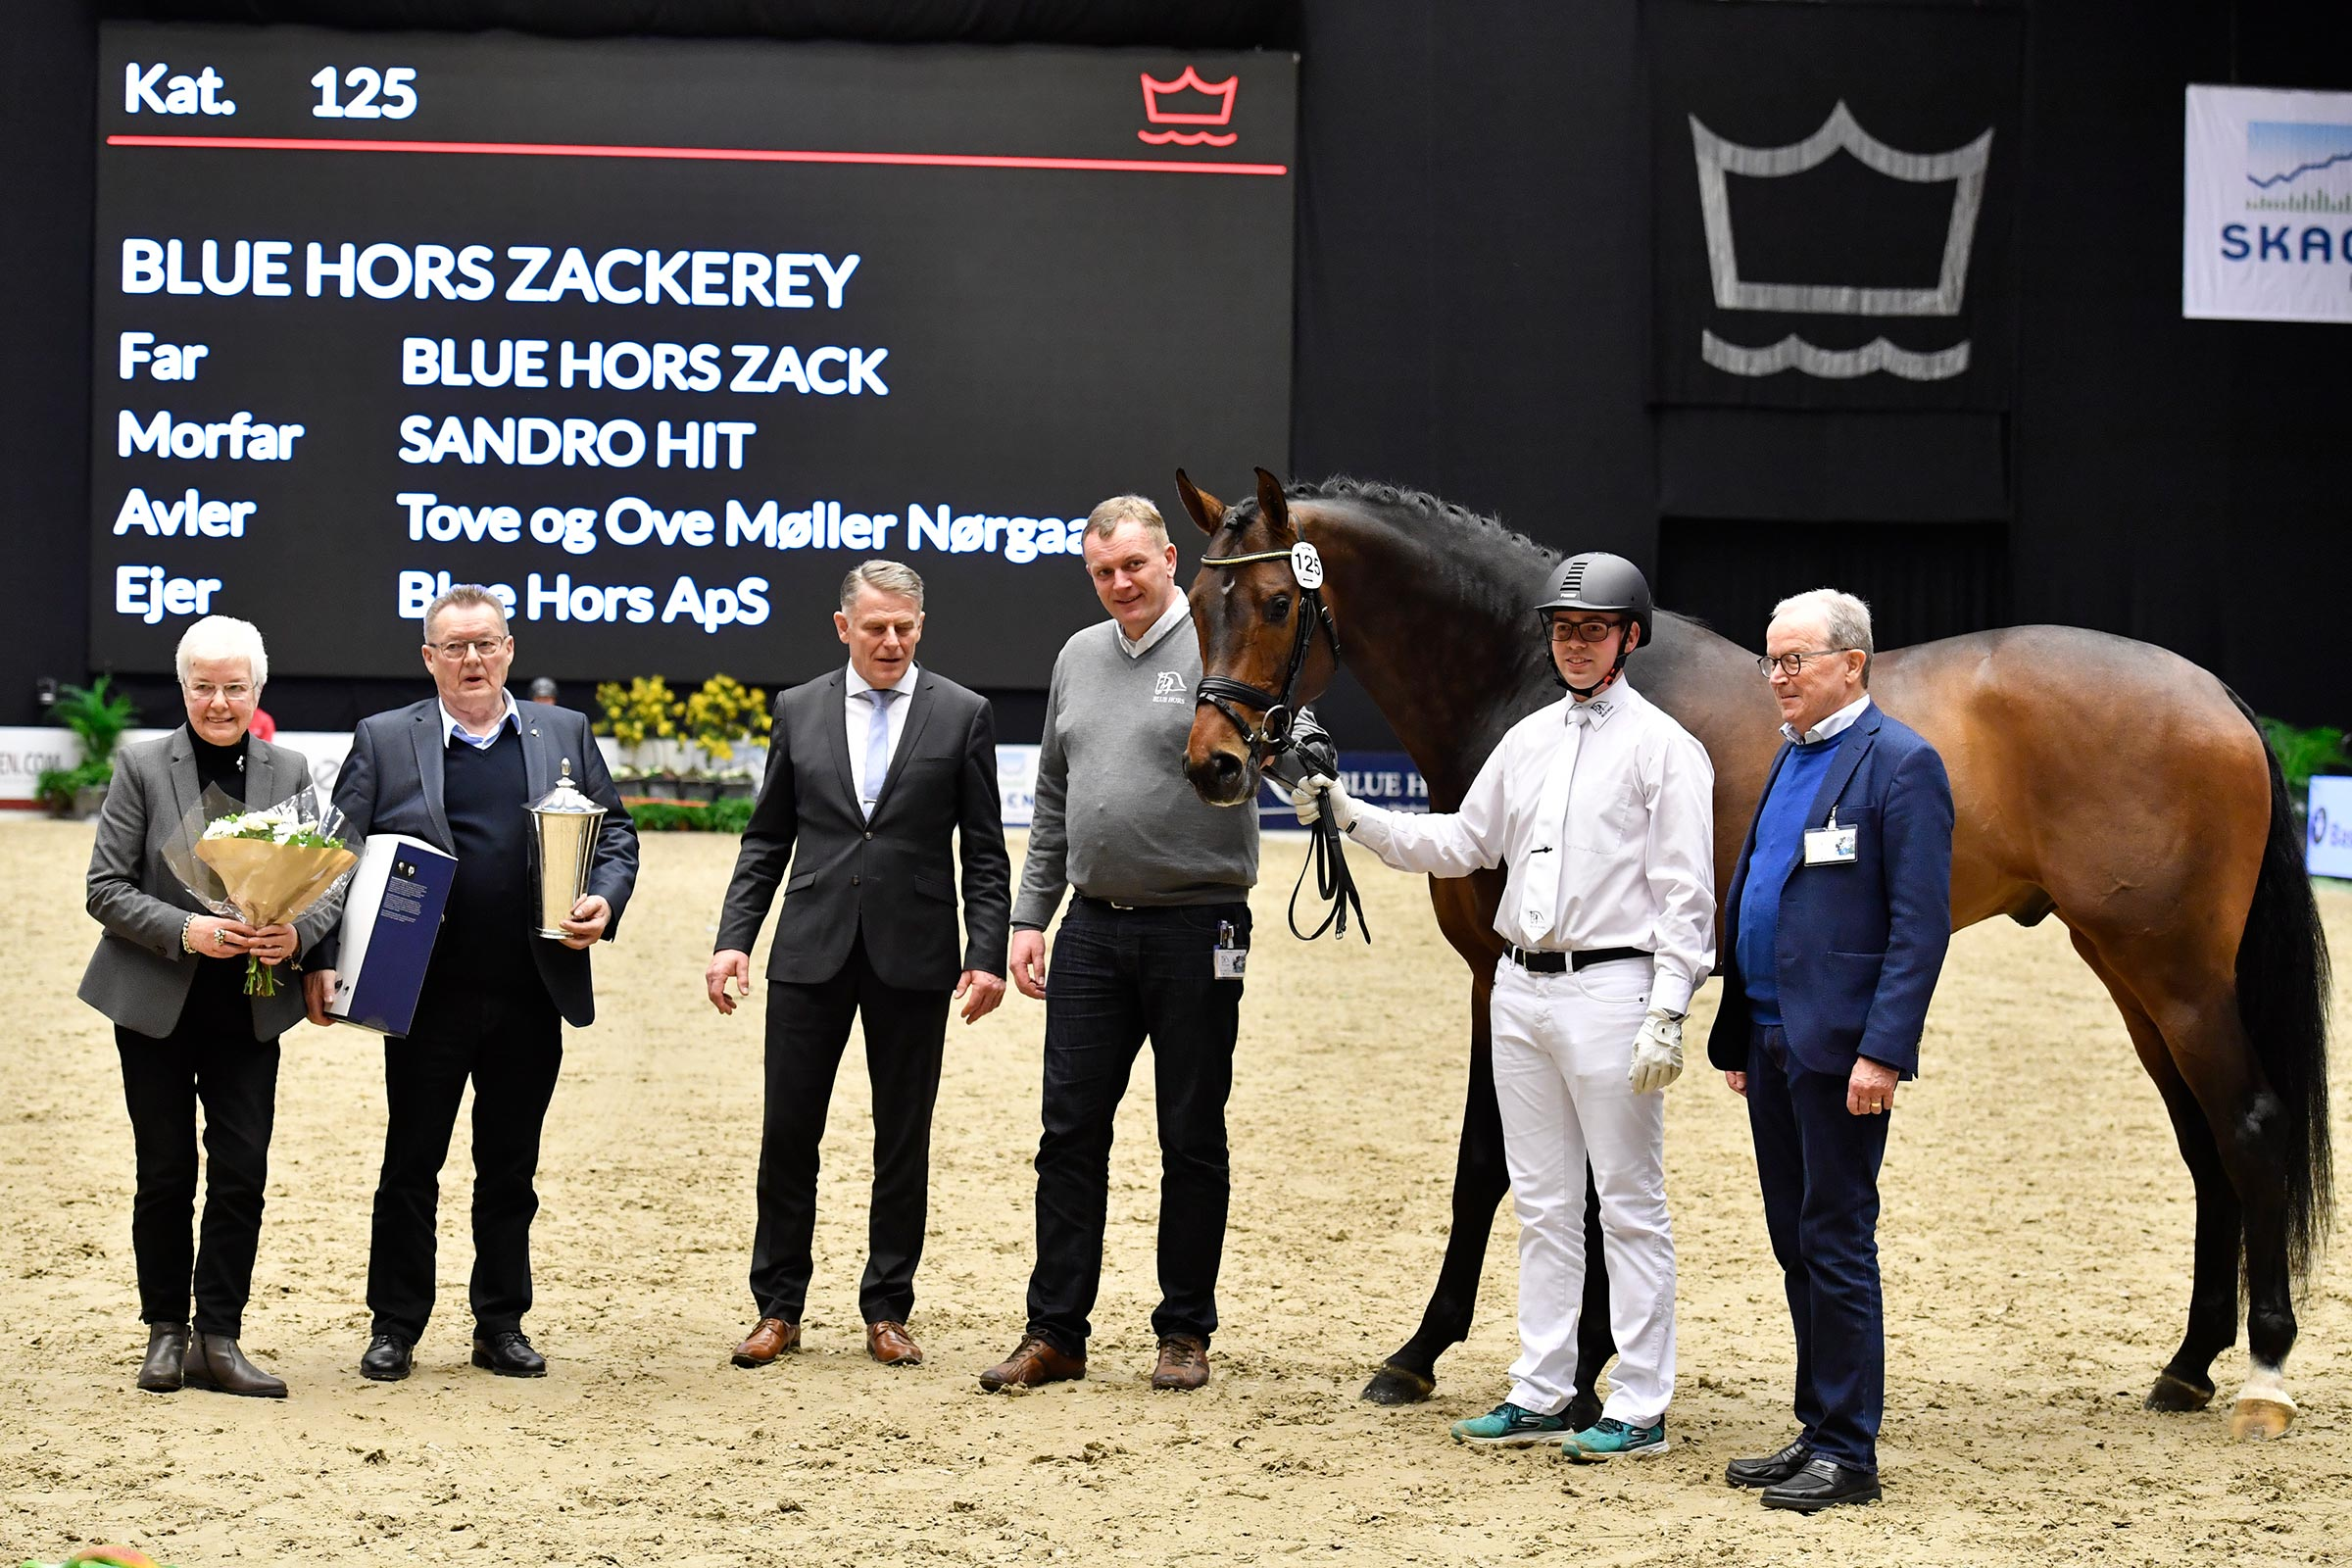 Best Danish-bred dressage stallion Blue Hors Zackerey was awarded the rare and coveted breeder medal in gold.